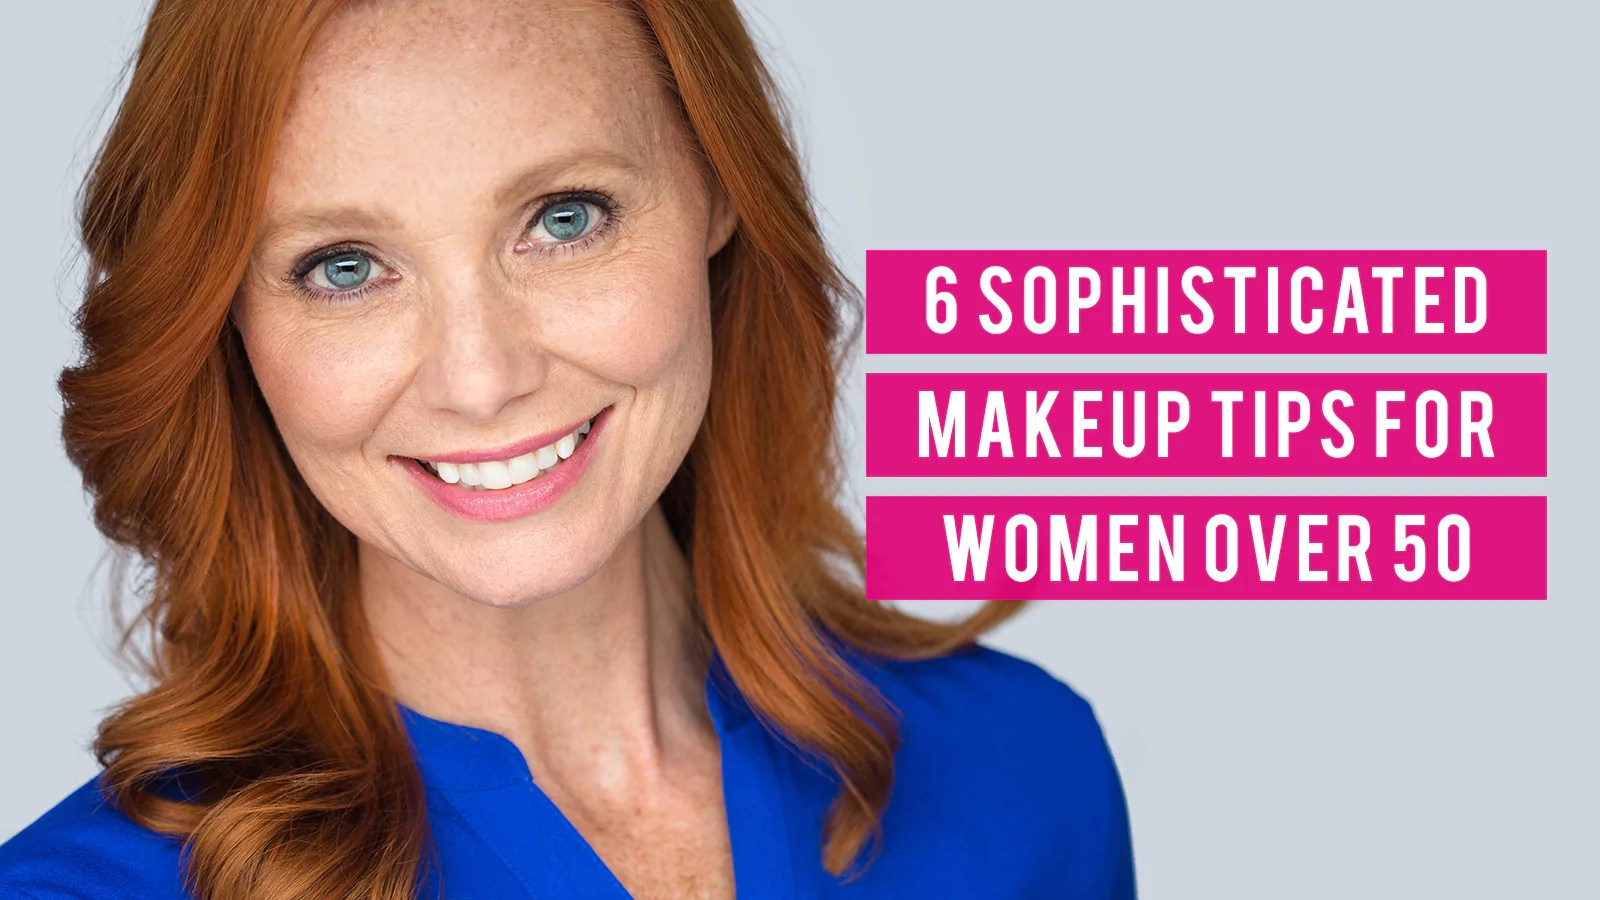 6 sophisticated makeup tips